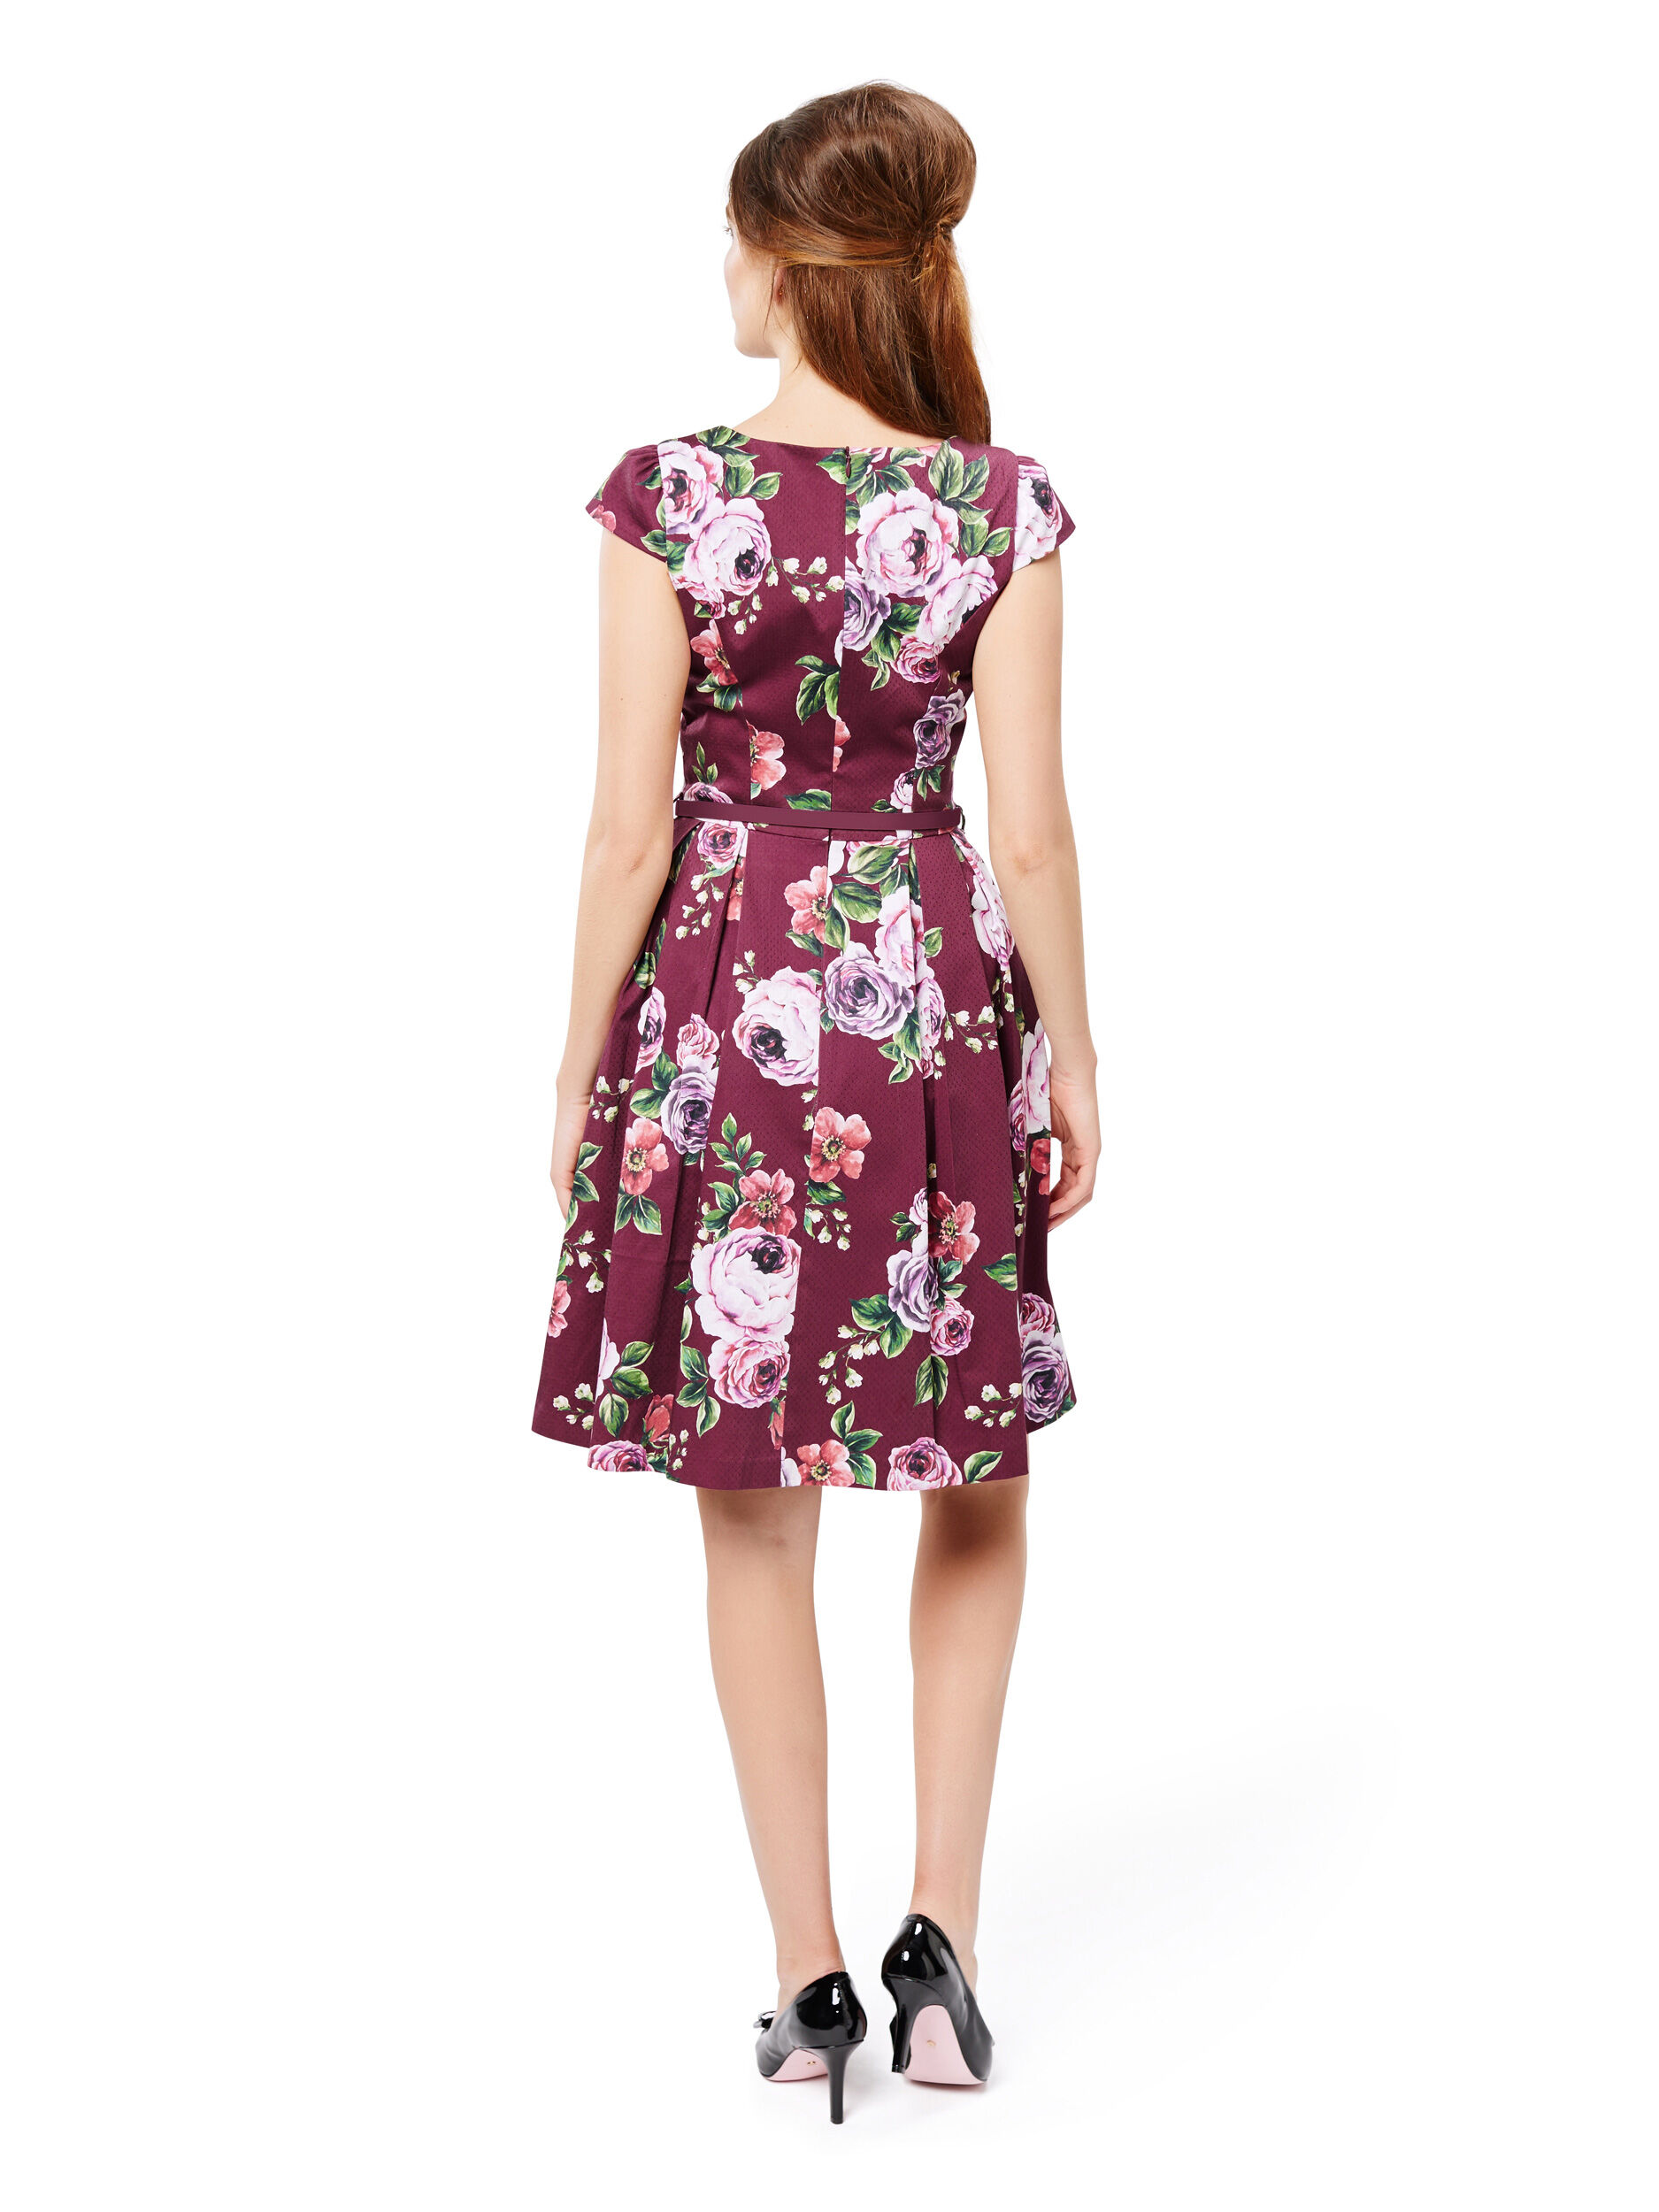 Chateau Floral Dress